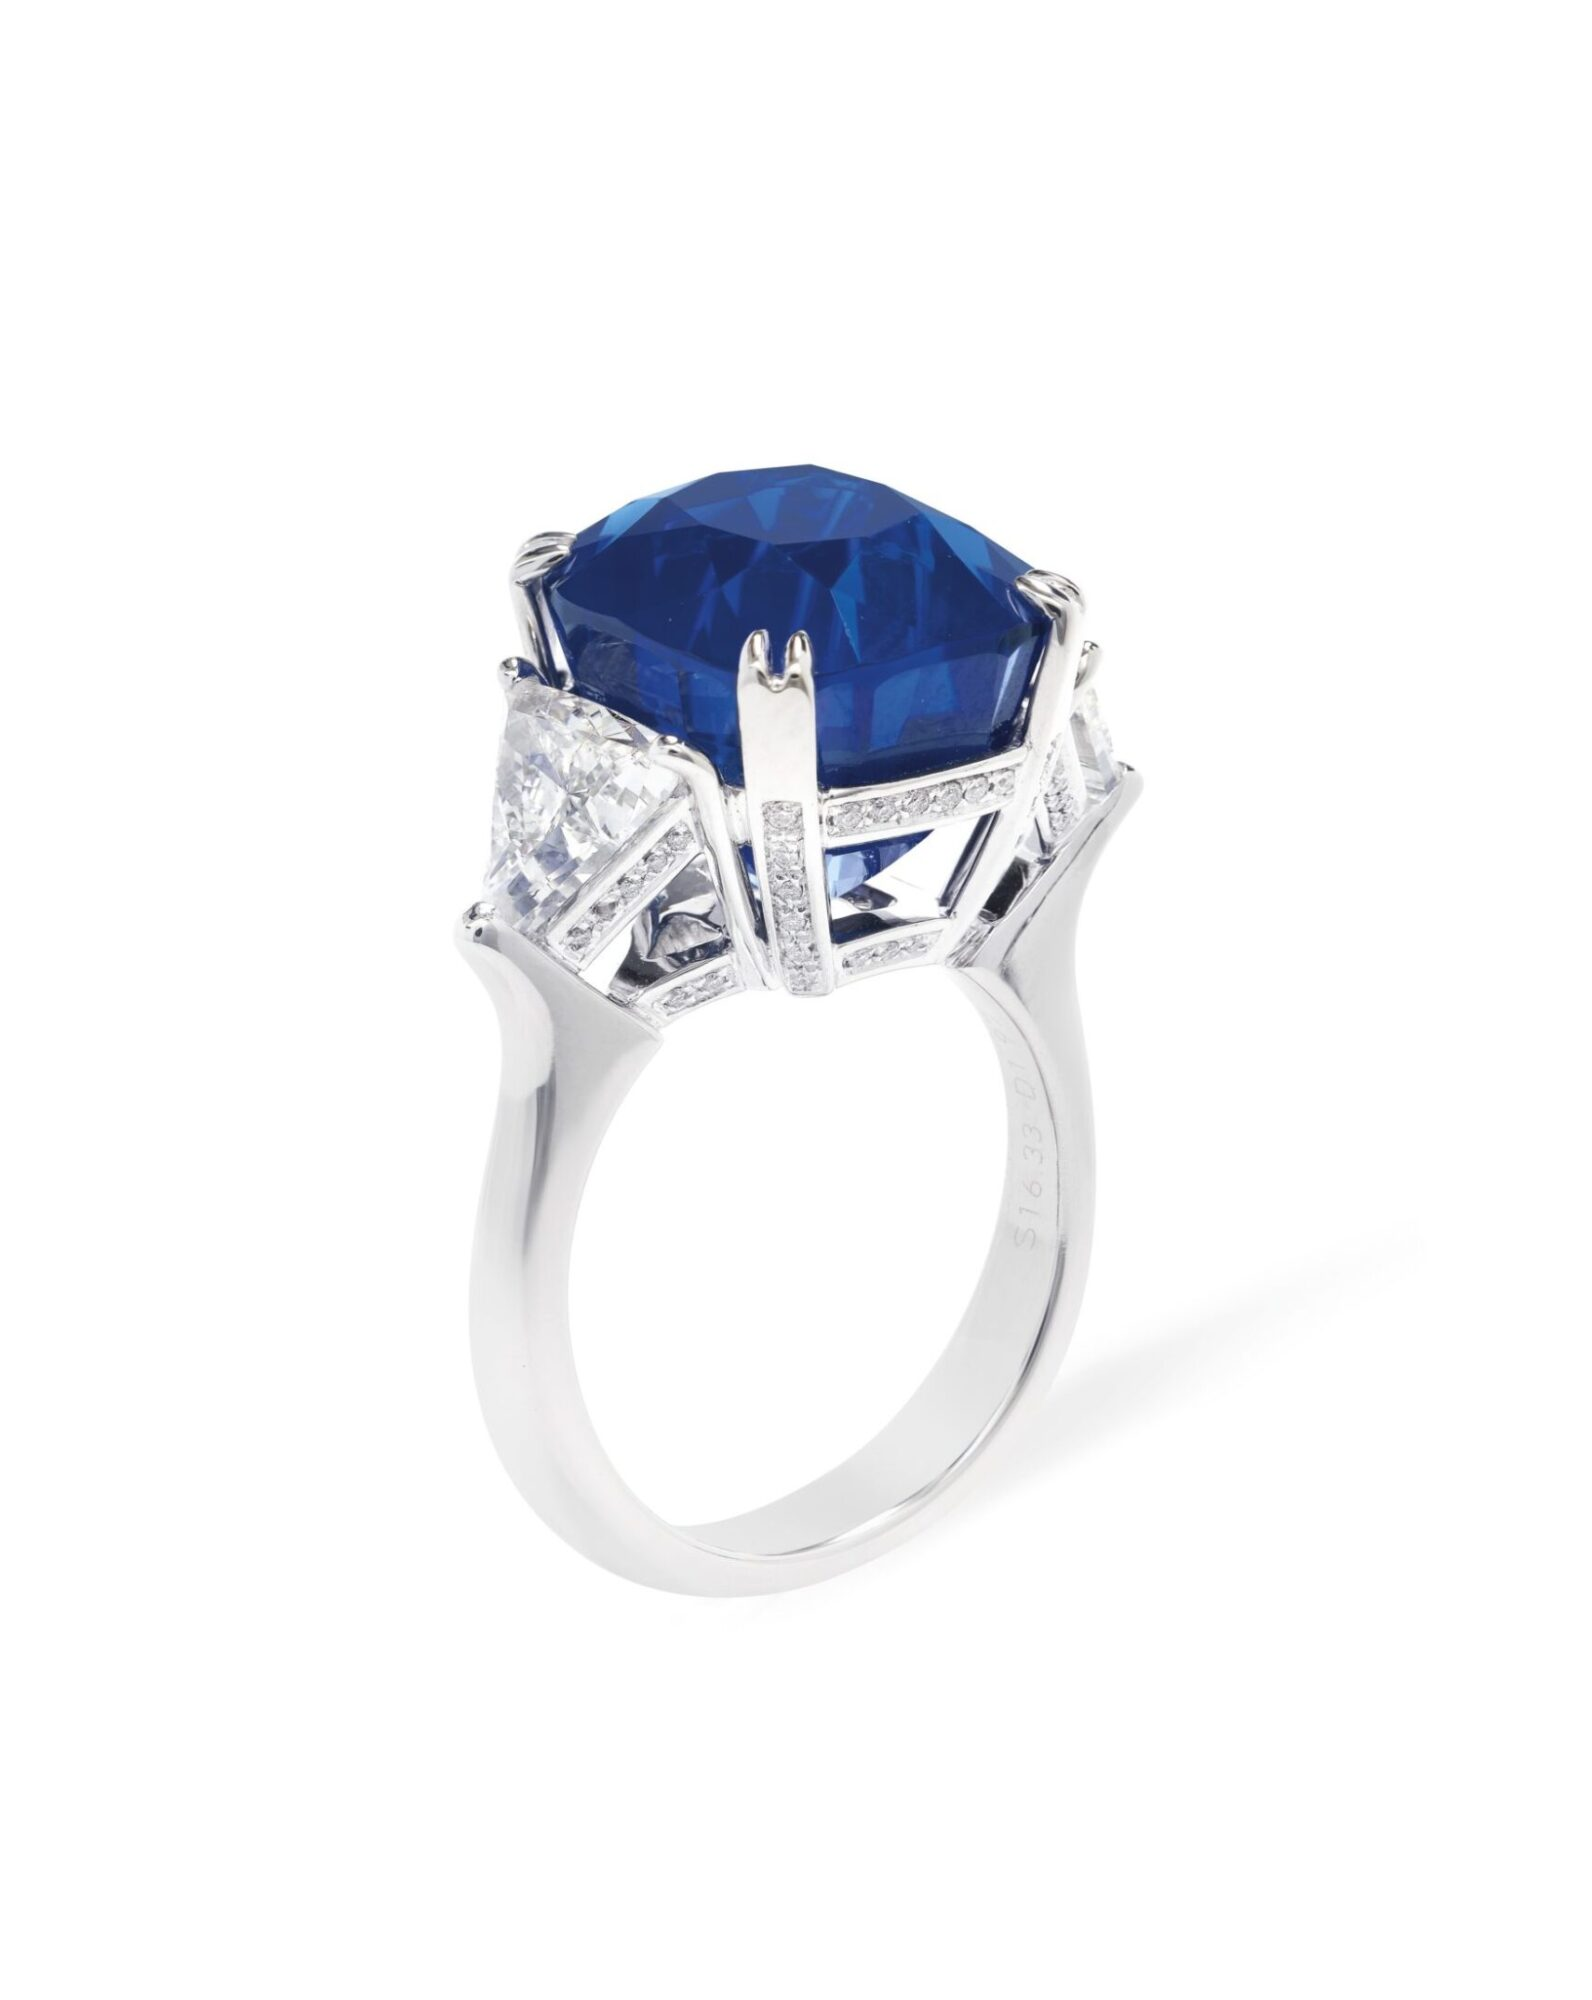 Sapphire and diamond ring of 16.33 cts, estimate CHF1,400,000-2,400,000